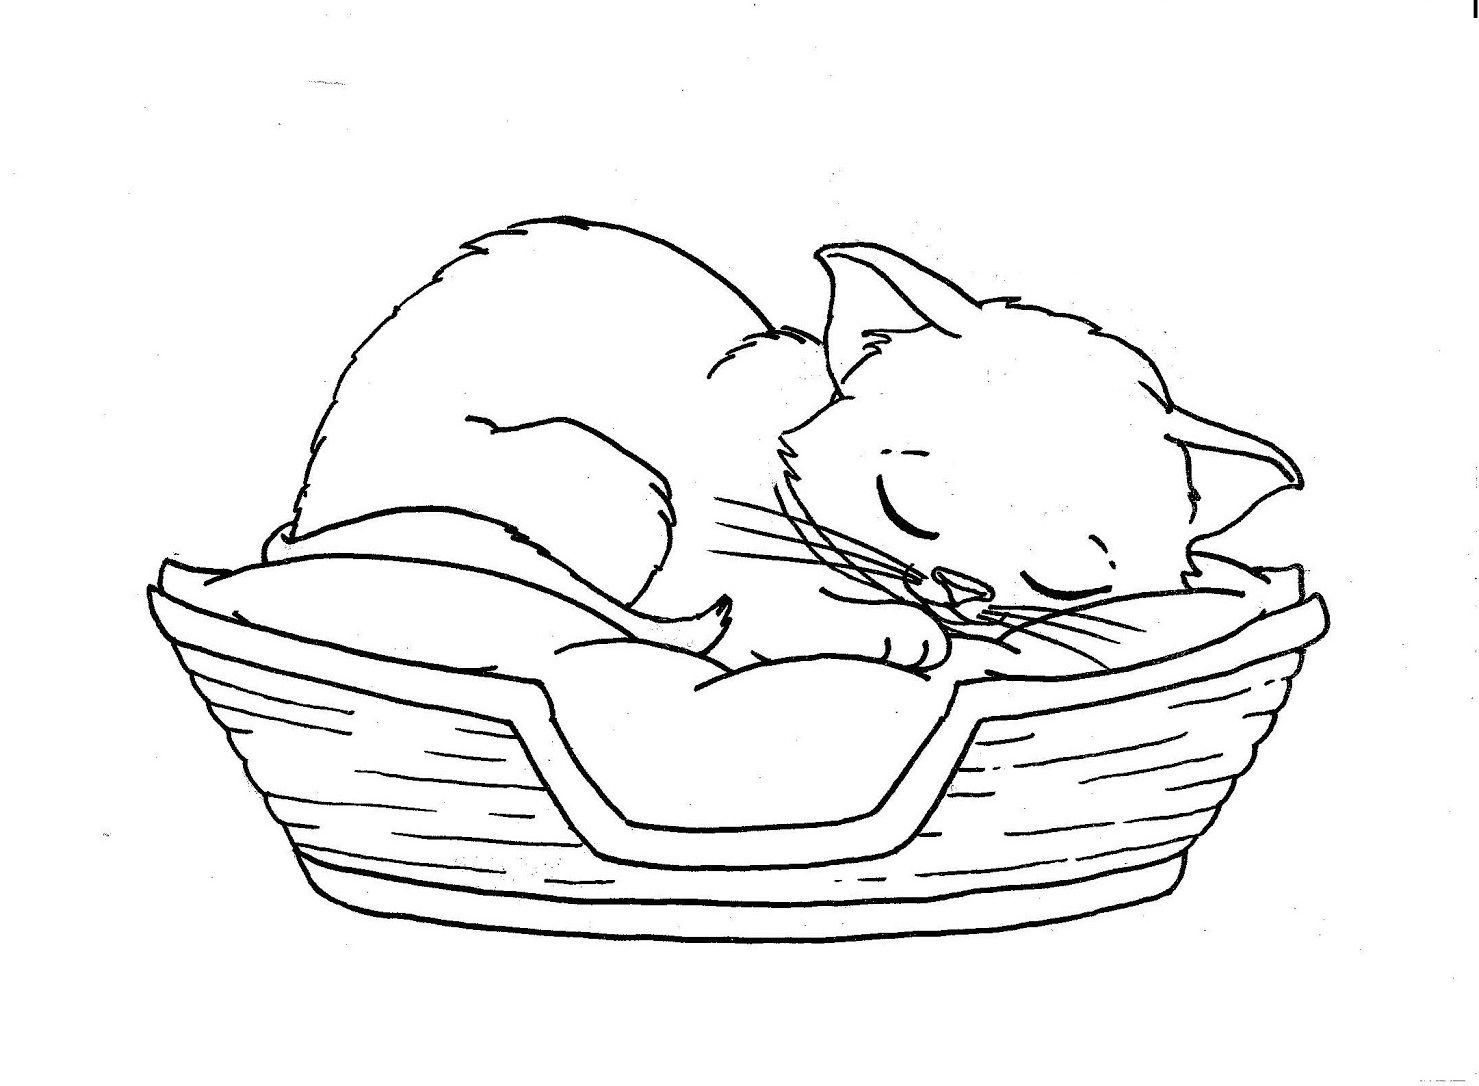 Cats Sleeping coloring picture for kids embroidery